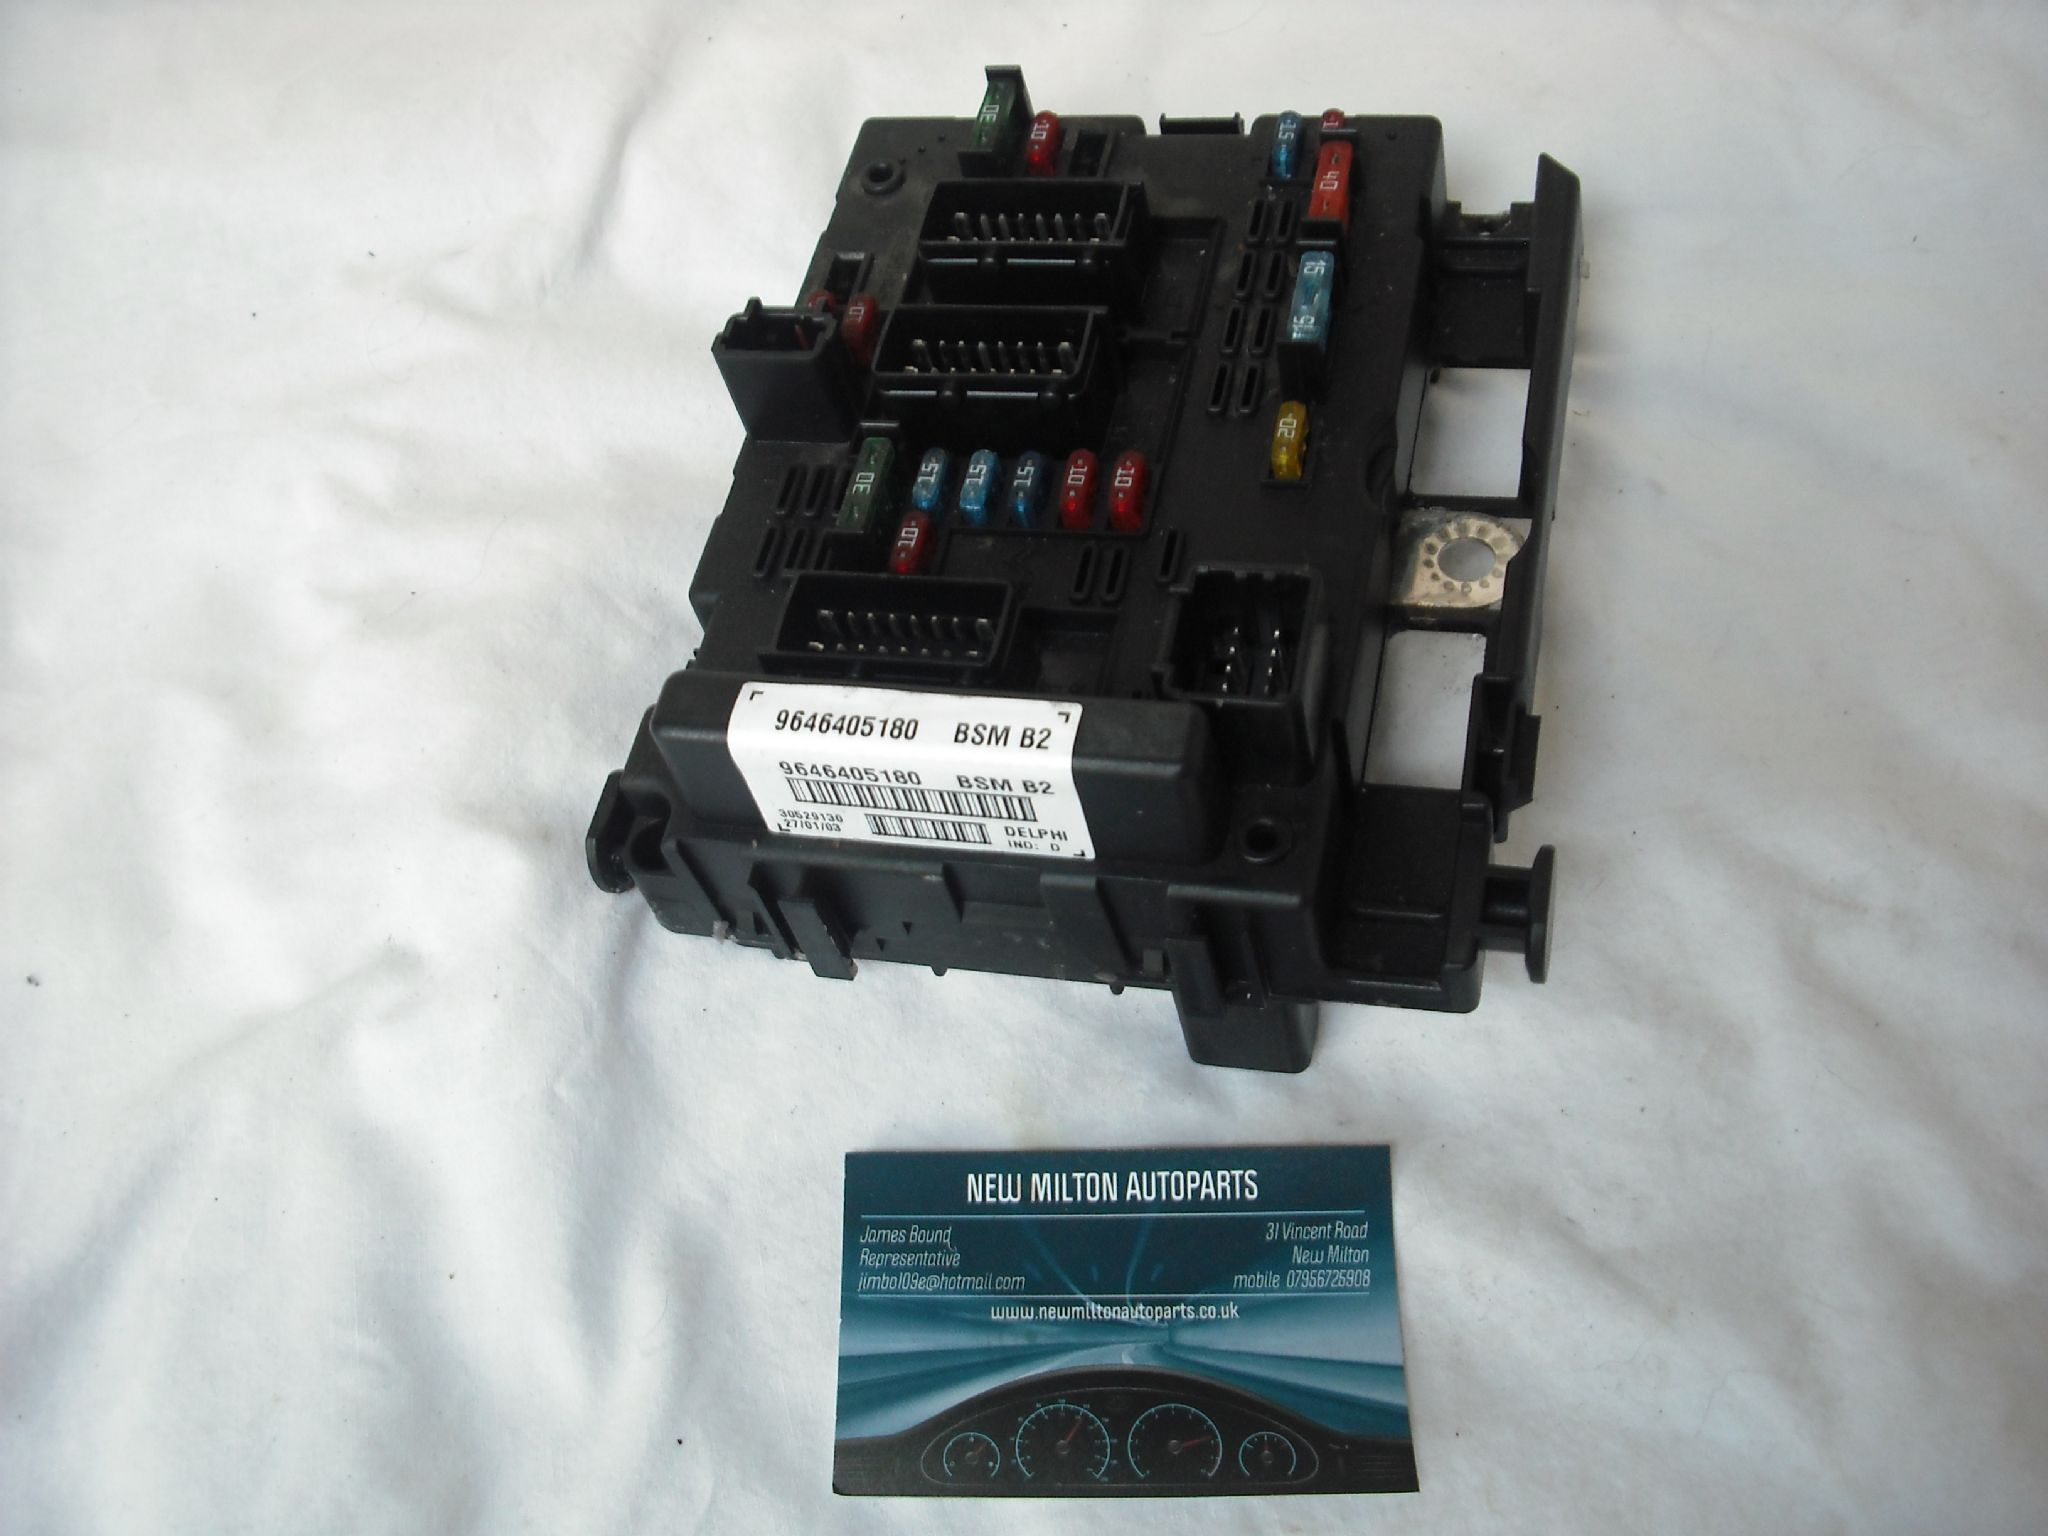 a genuine peugeot 307 1.4 1.6 2.0 engine bay fuse box control module 9646405180 bsm b2 delphi 6701 p a genuine peugeot 307 1 4 1 6 2 0 engine bay fuse box control delphi fuse box at bayanpartner.co